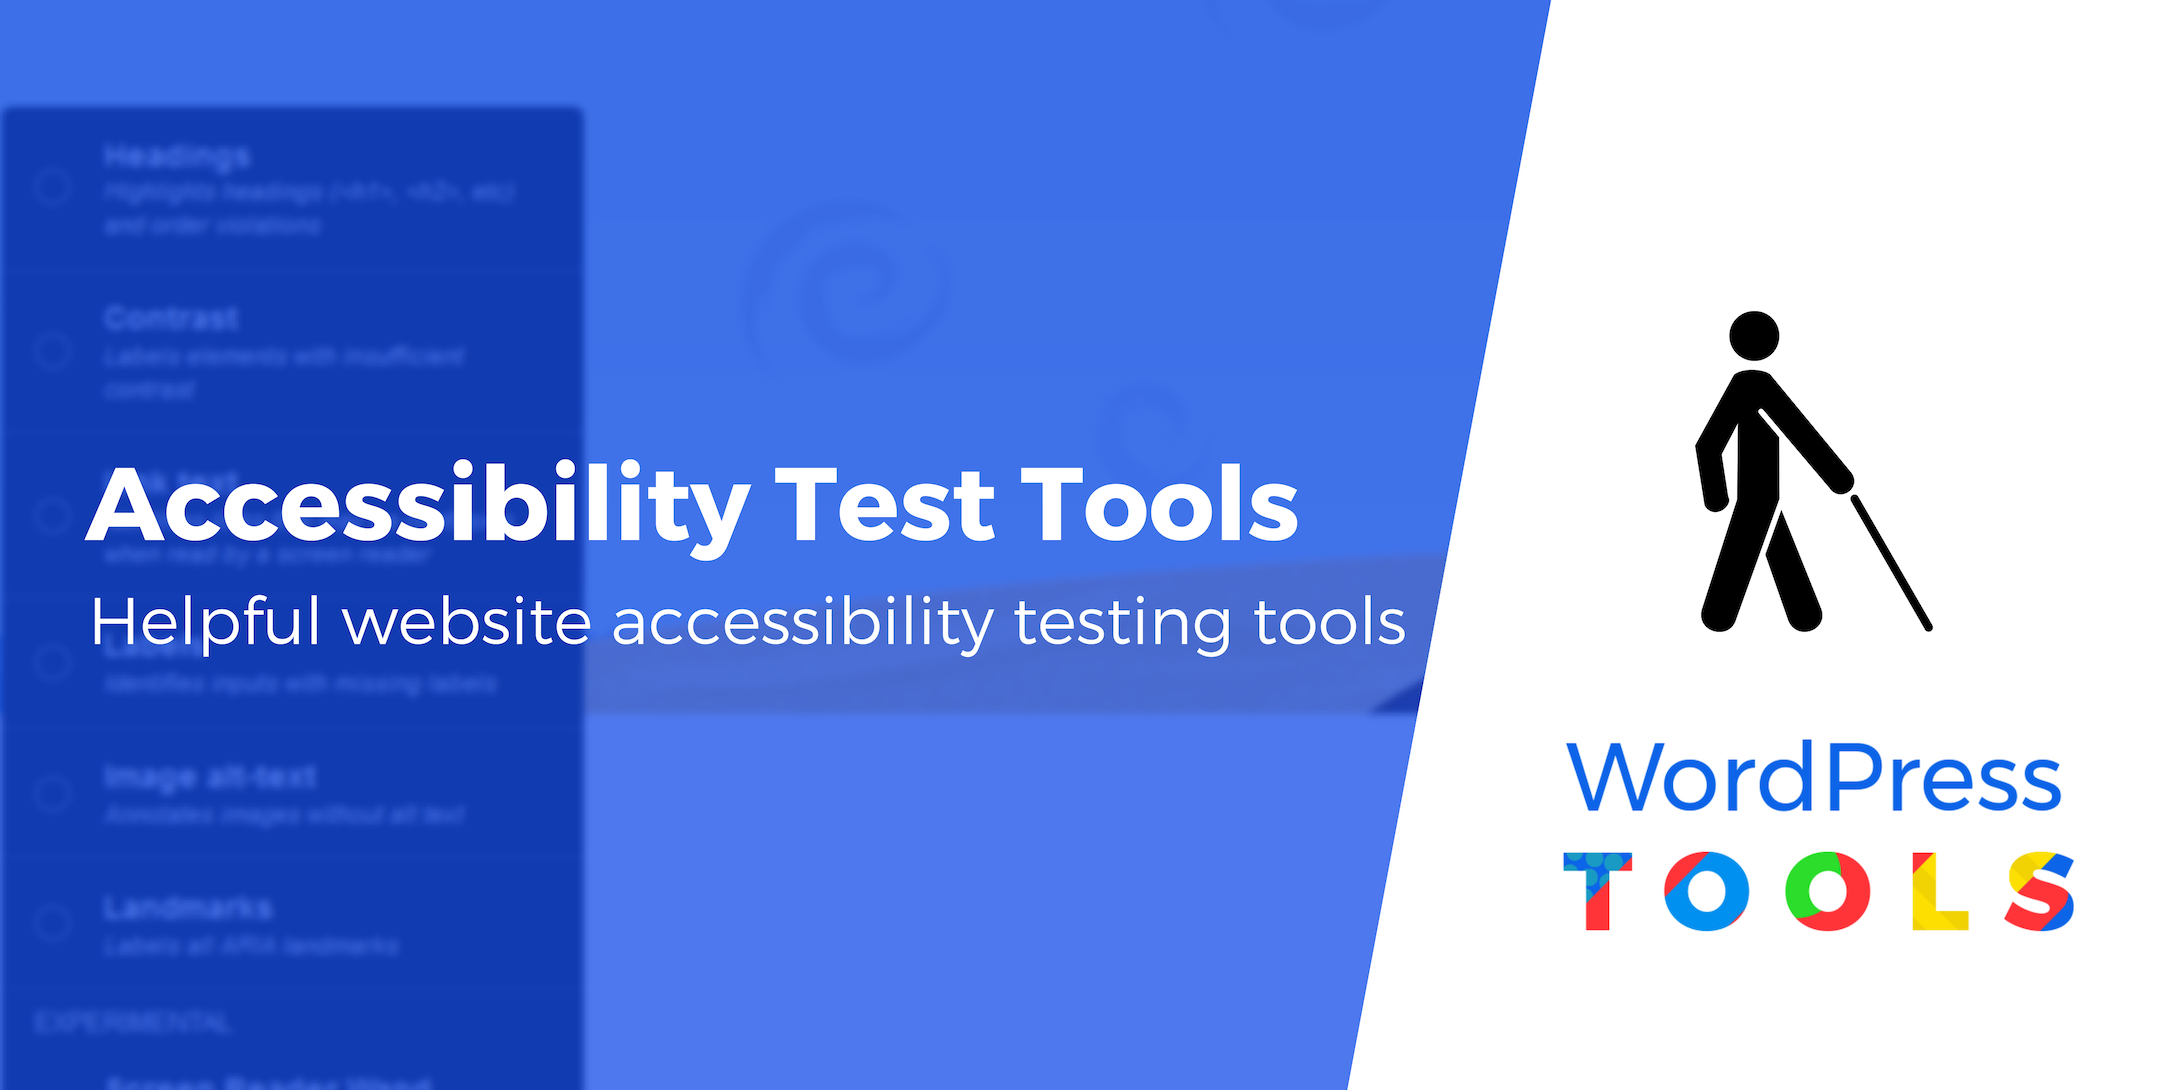 Accessibility Testing Tools